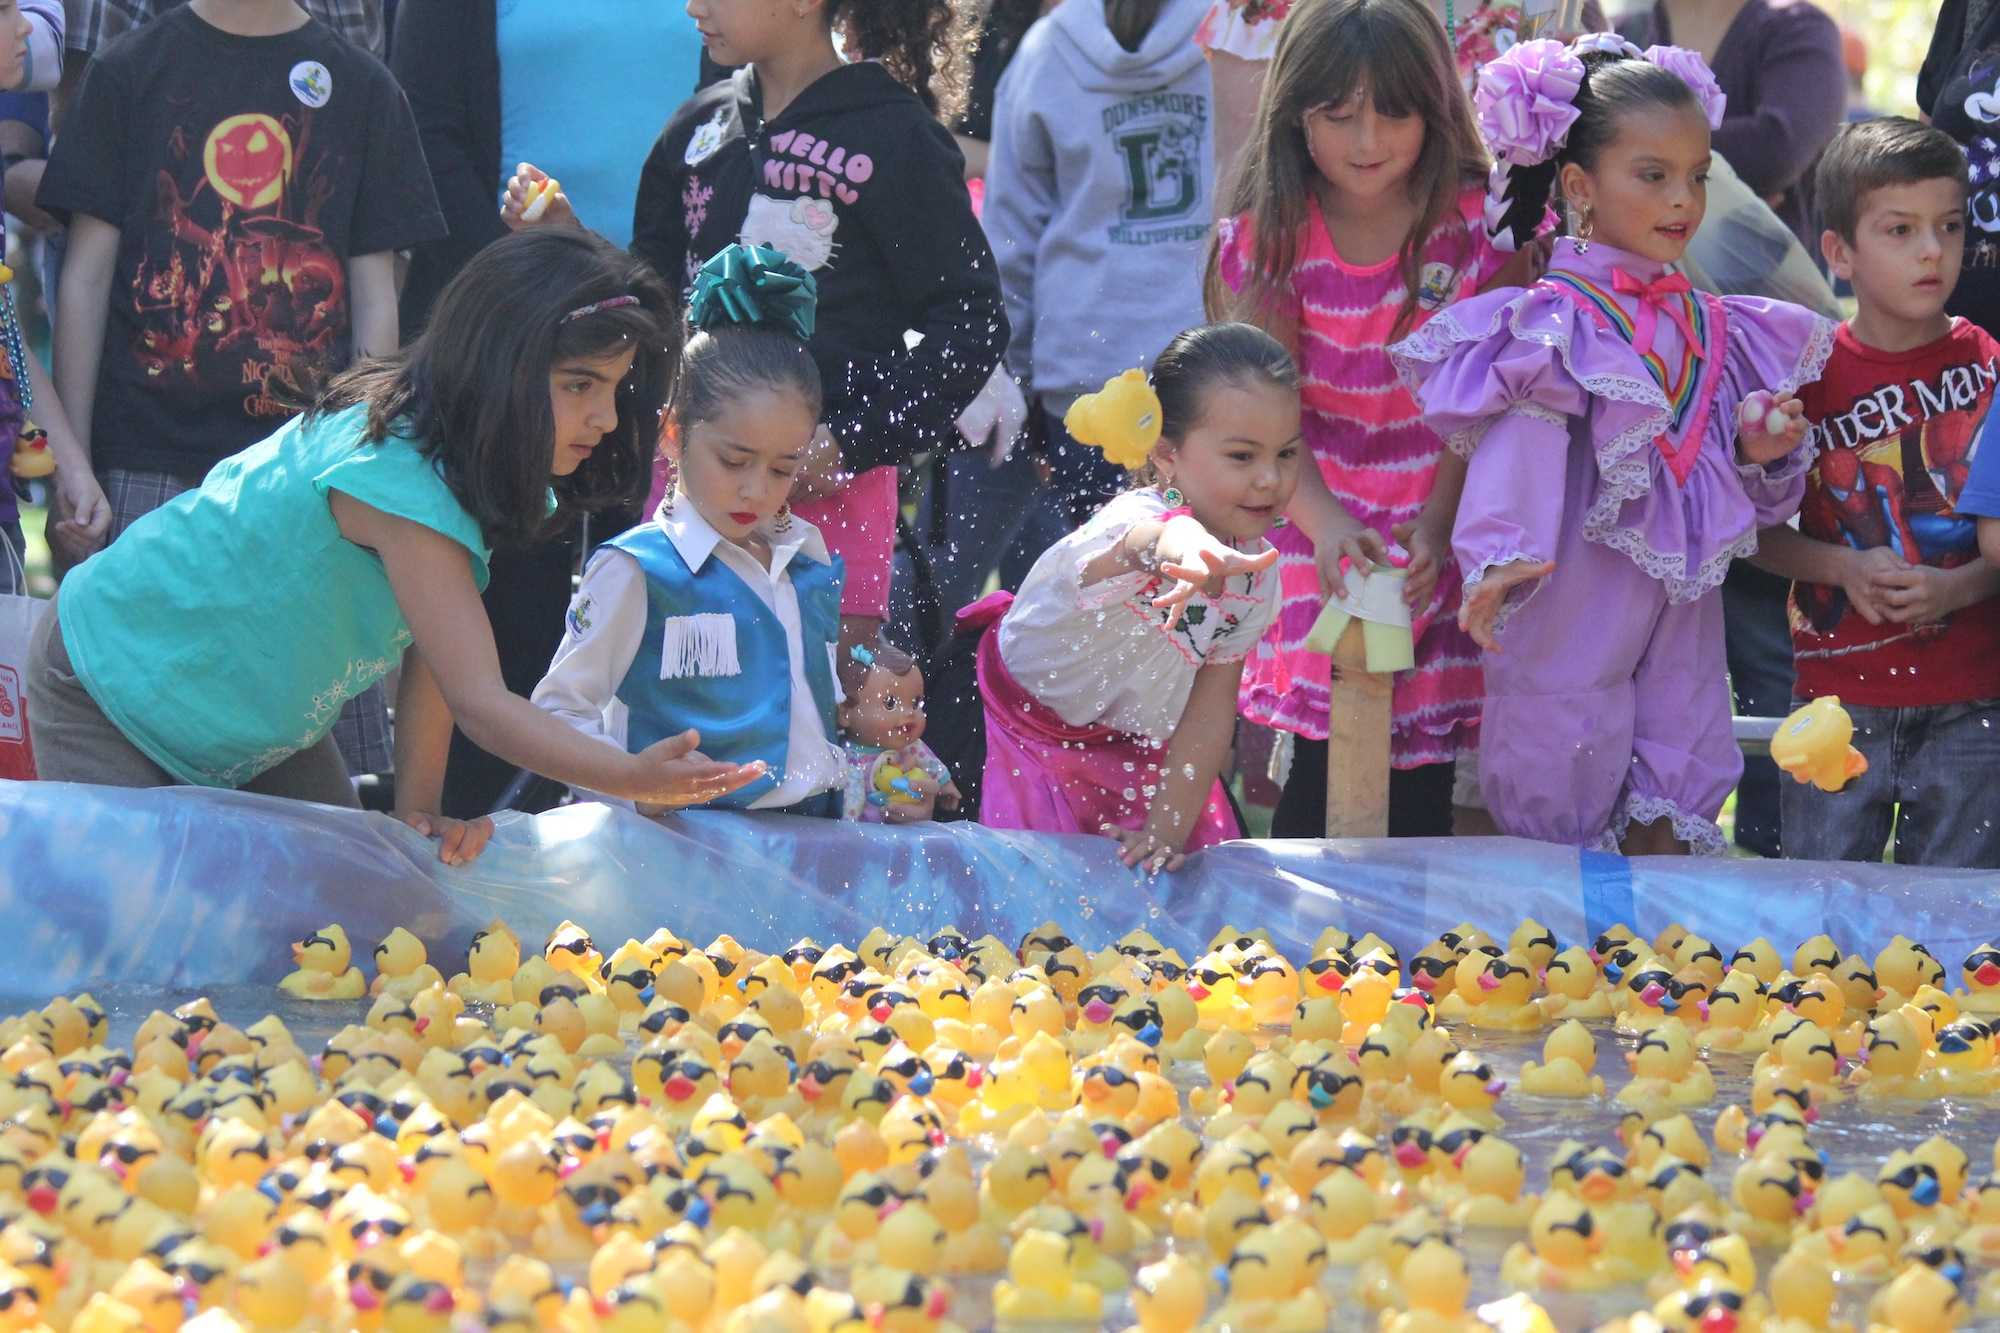 Kids help gather the rubber ducks after the race on Saturday.